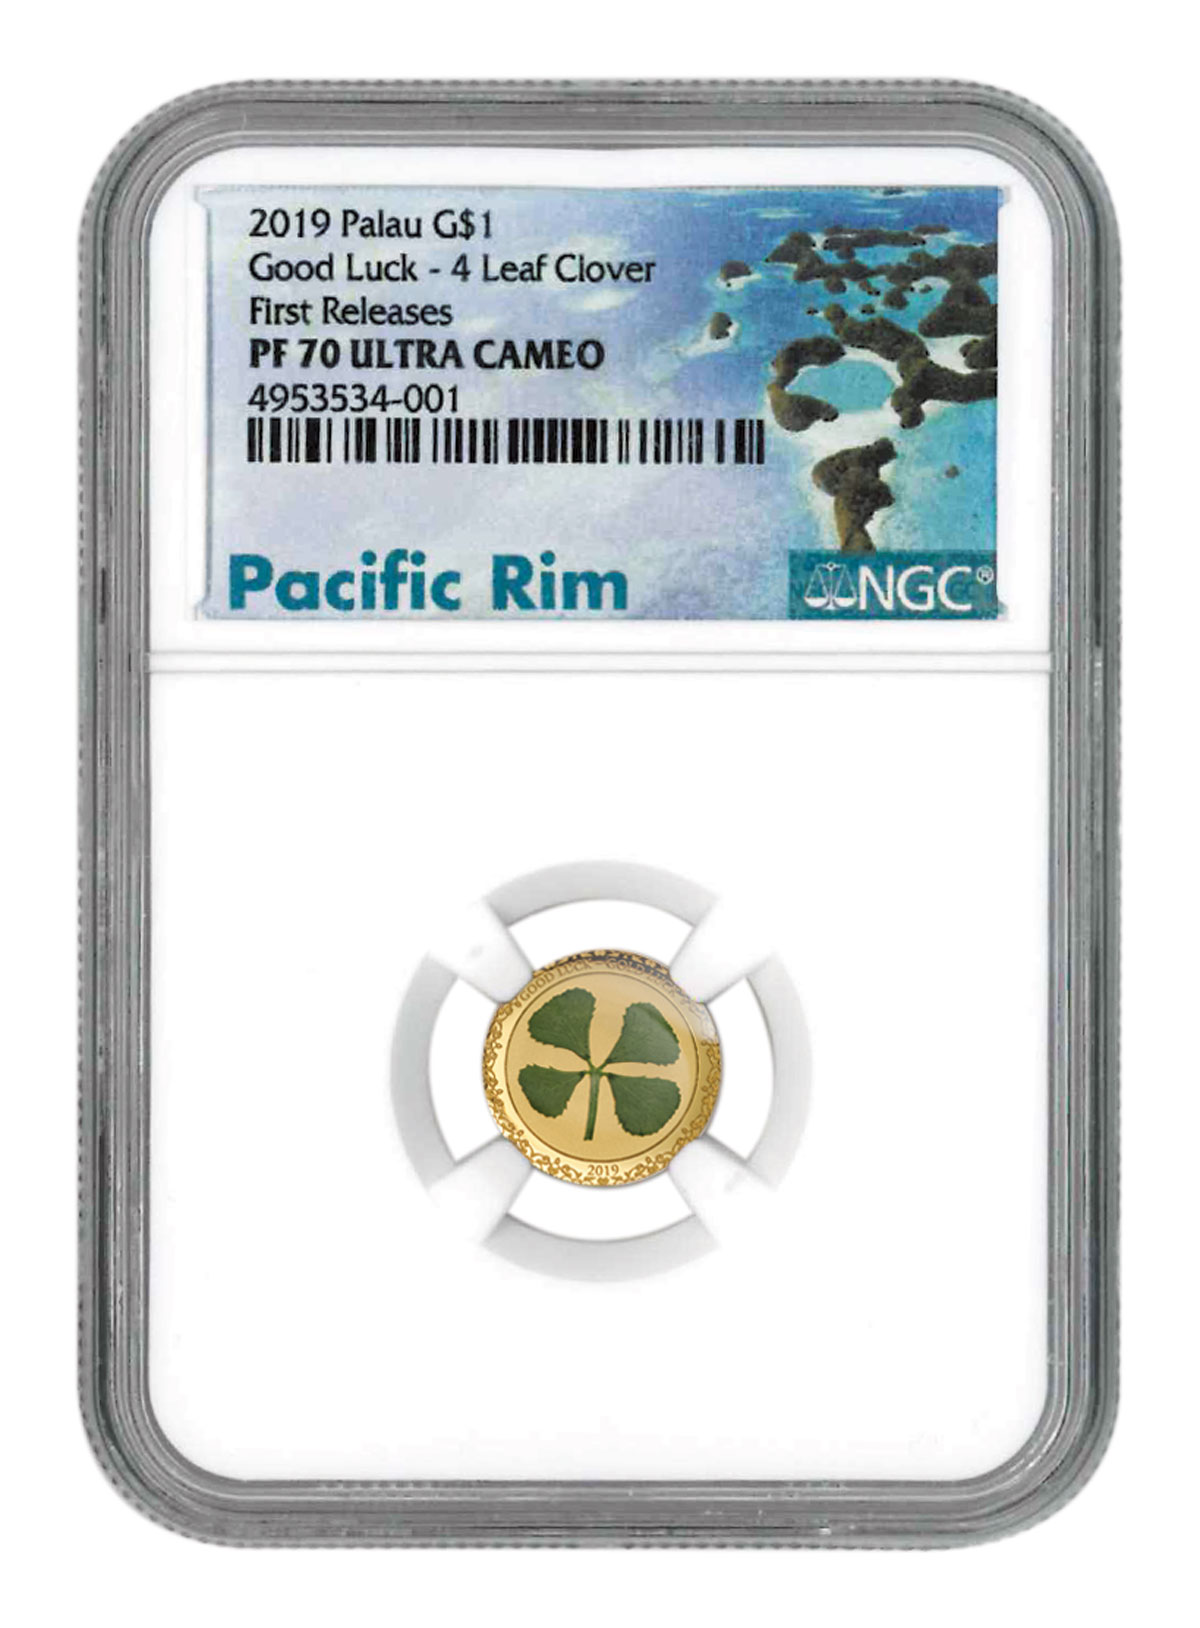 2019 Palau Four Leaf Clover 1 g Gold Proof $1 Coin NGC PF70 UC FR SKU55176